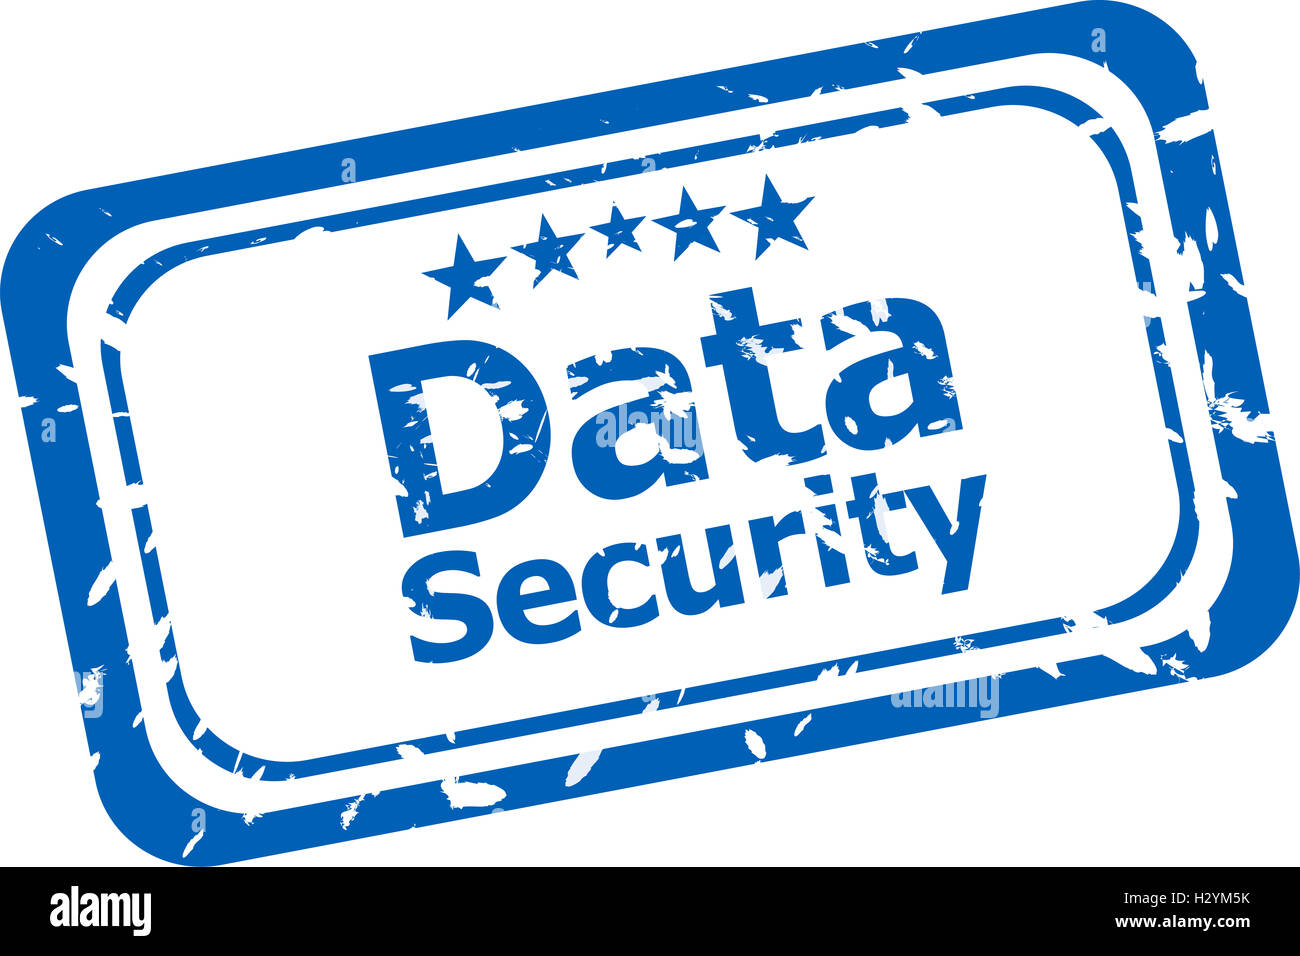 data security on rubber stamp over a white background - Stock Image